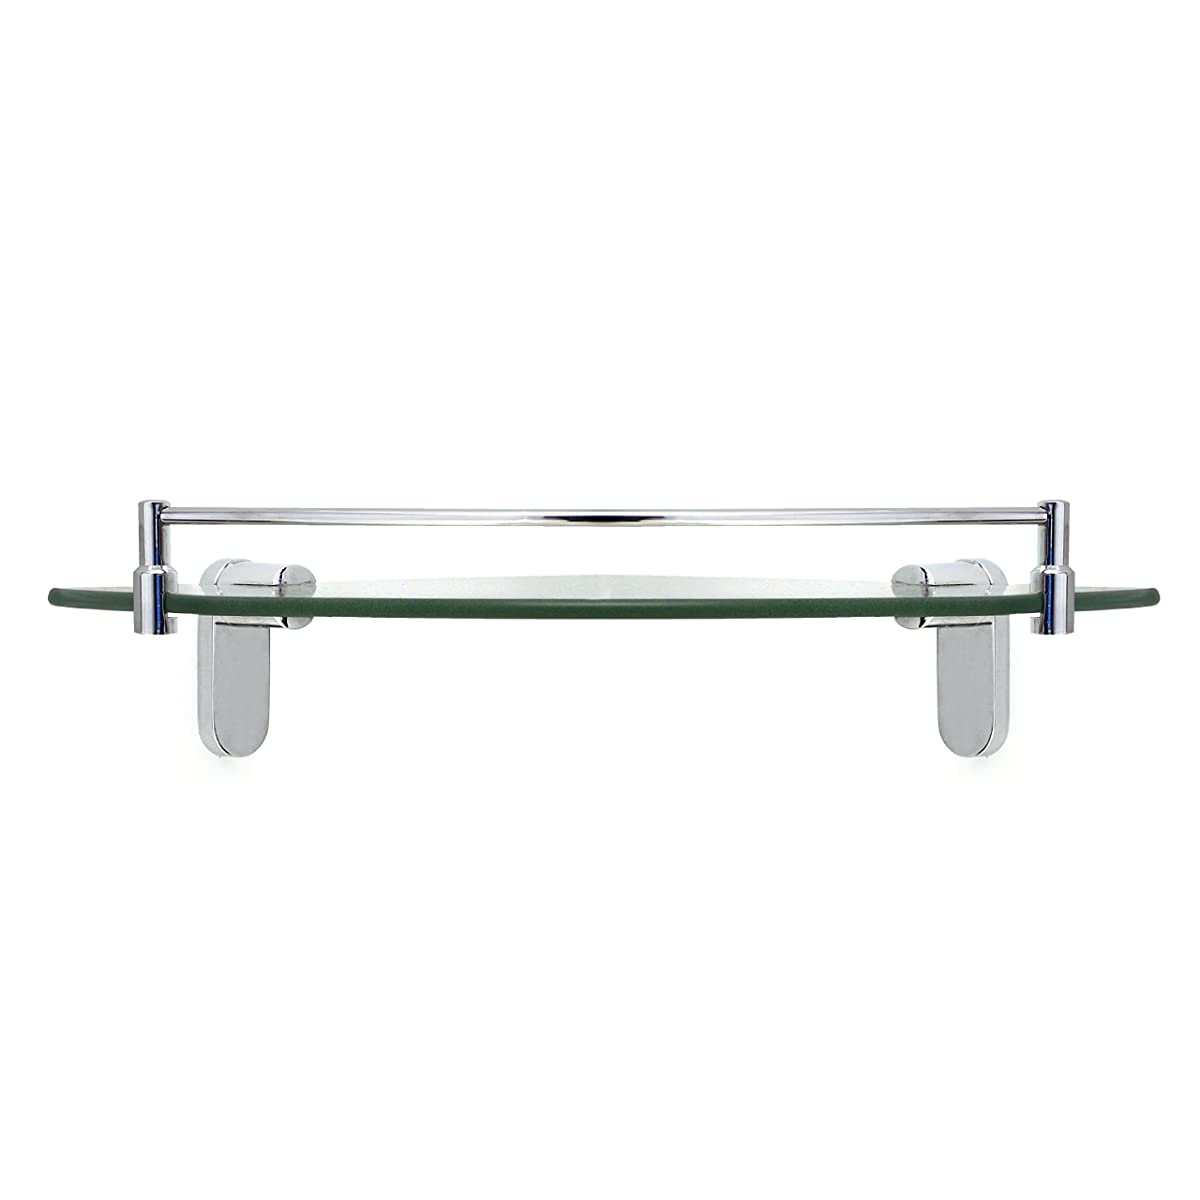 MODONA Corner Glass Shelf with Rail – Polished Chrome – Oval Series - 5 Year Warrantee